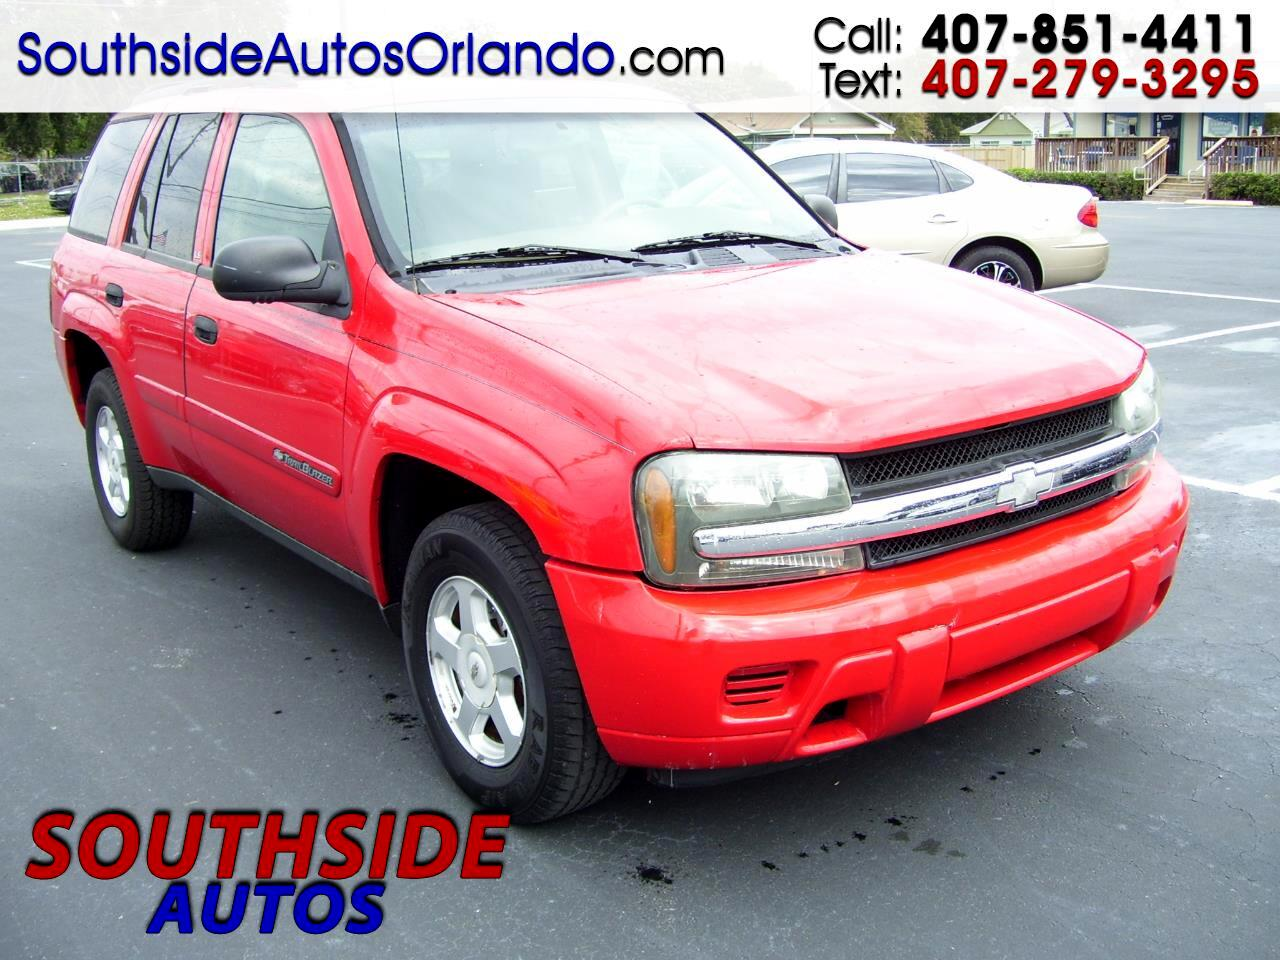 Buy Here Pay Here Orlando >> Buy Here Pay Here Cars For Sale Orlando Fl 32809 Southside Autos